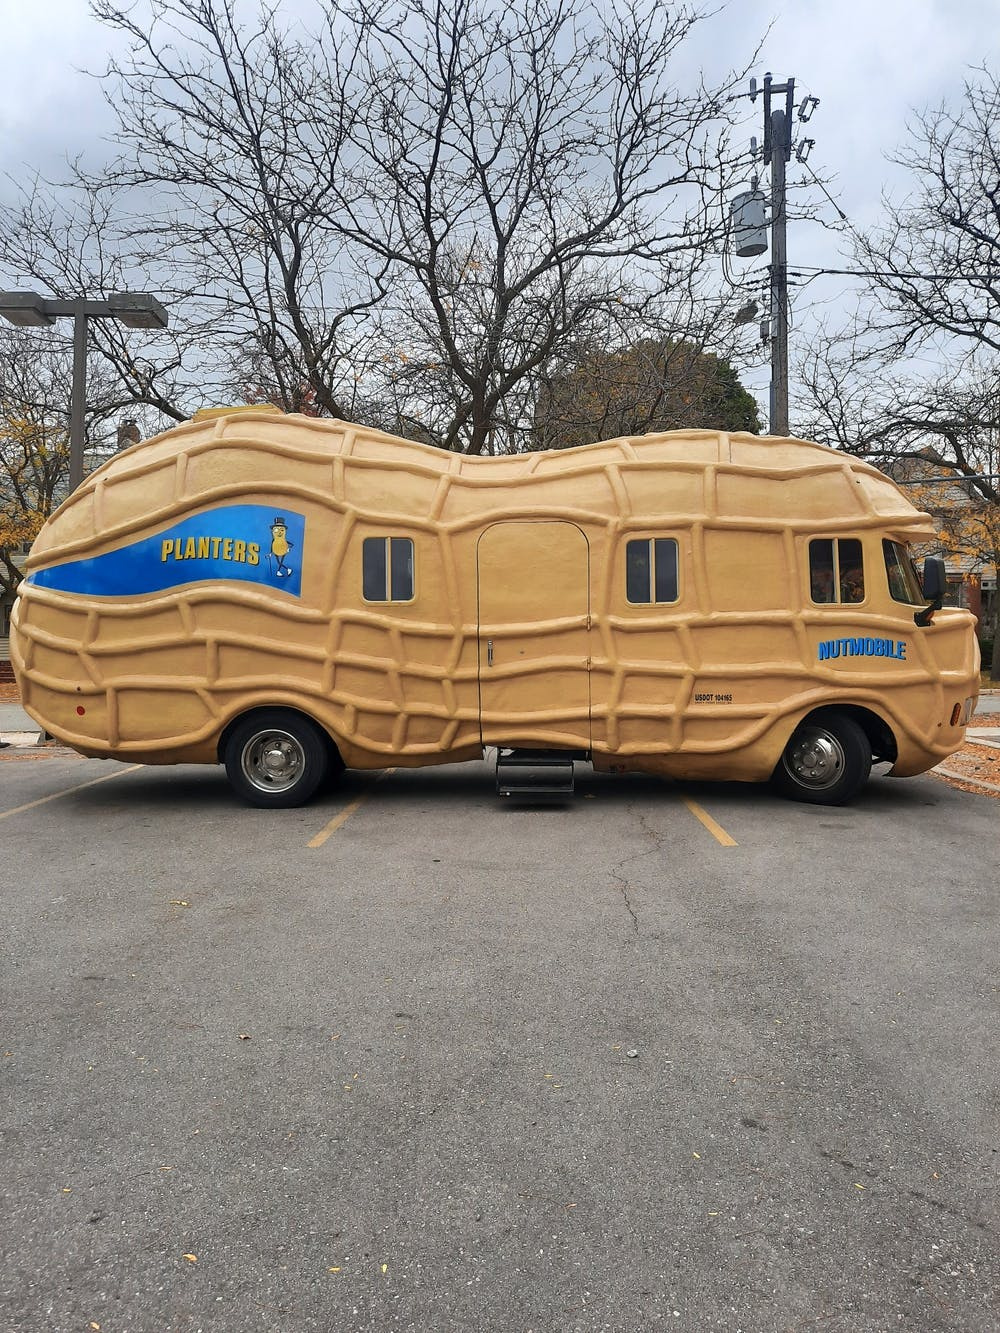 Opinion: You should visit the Nut-mobile